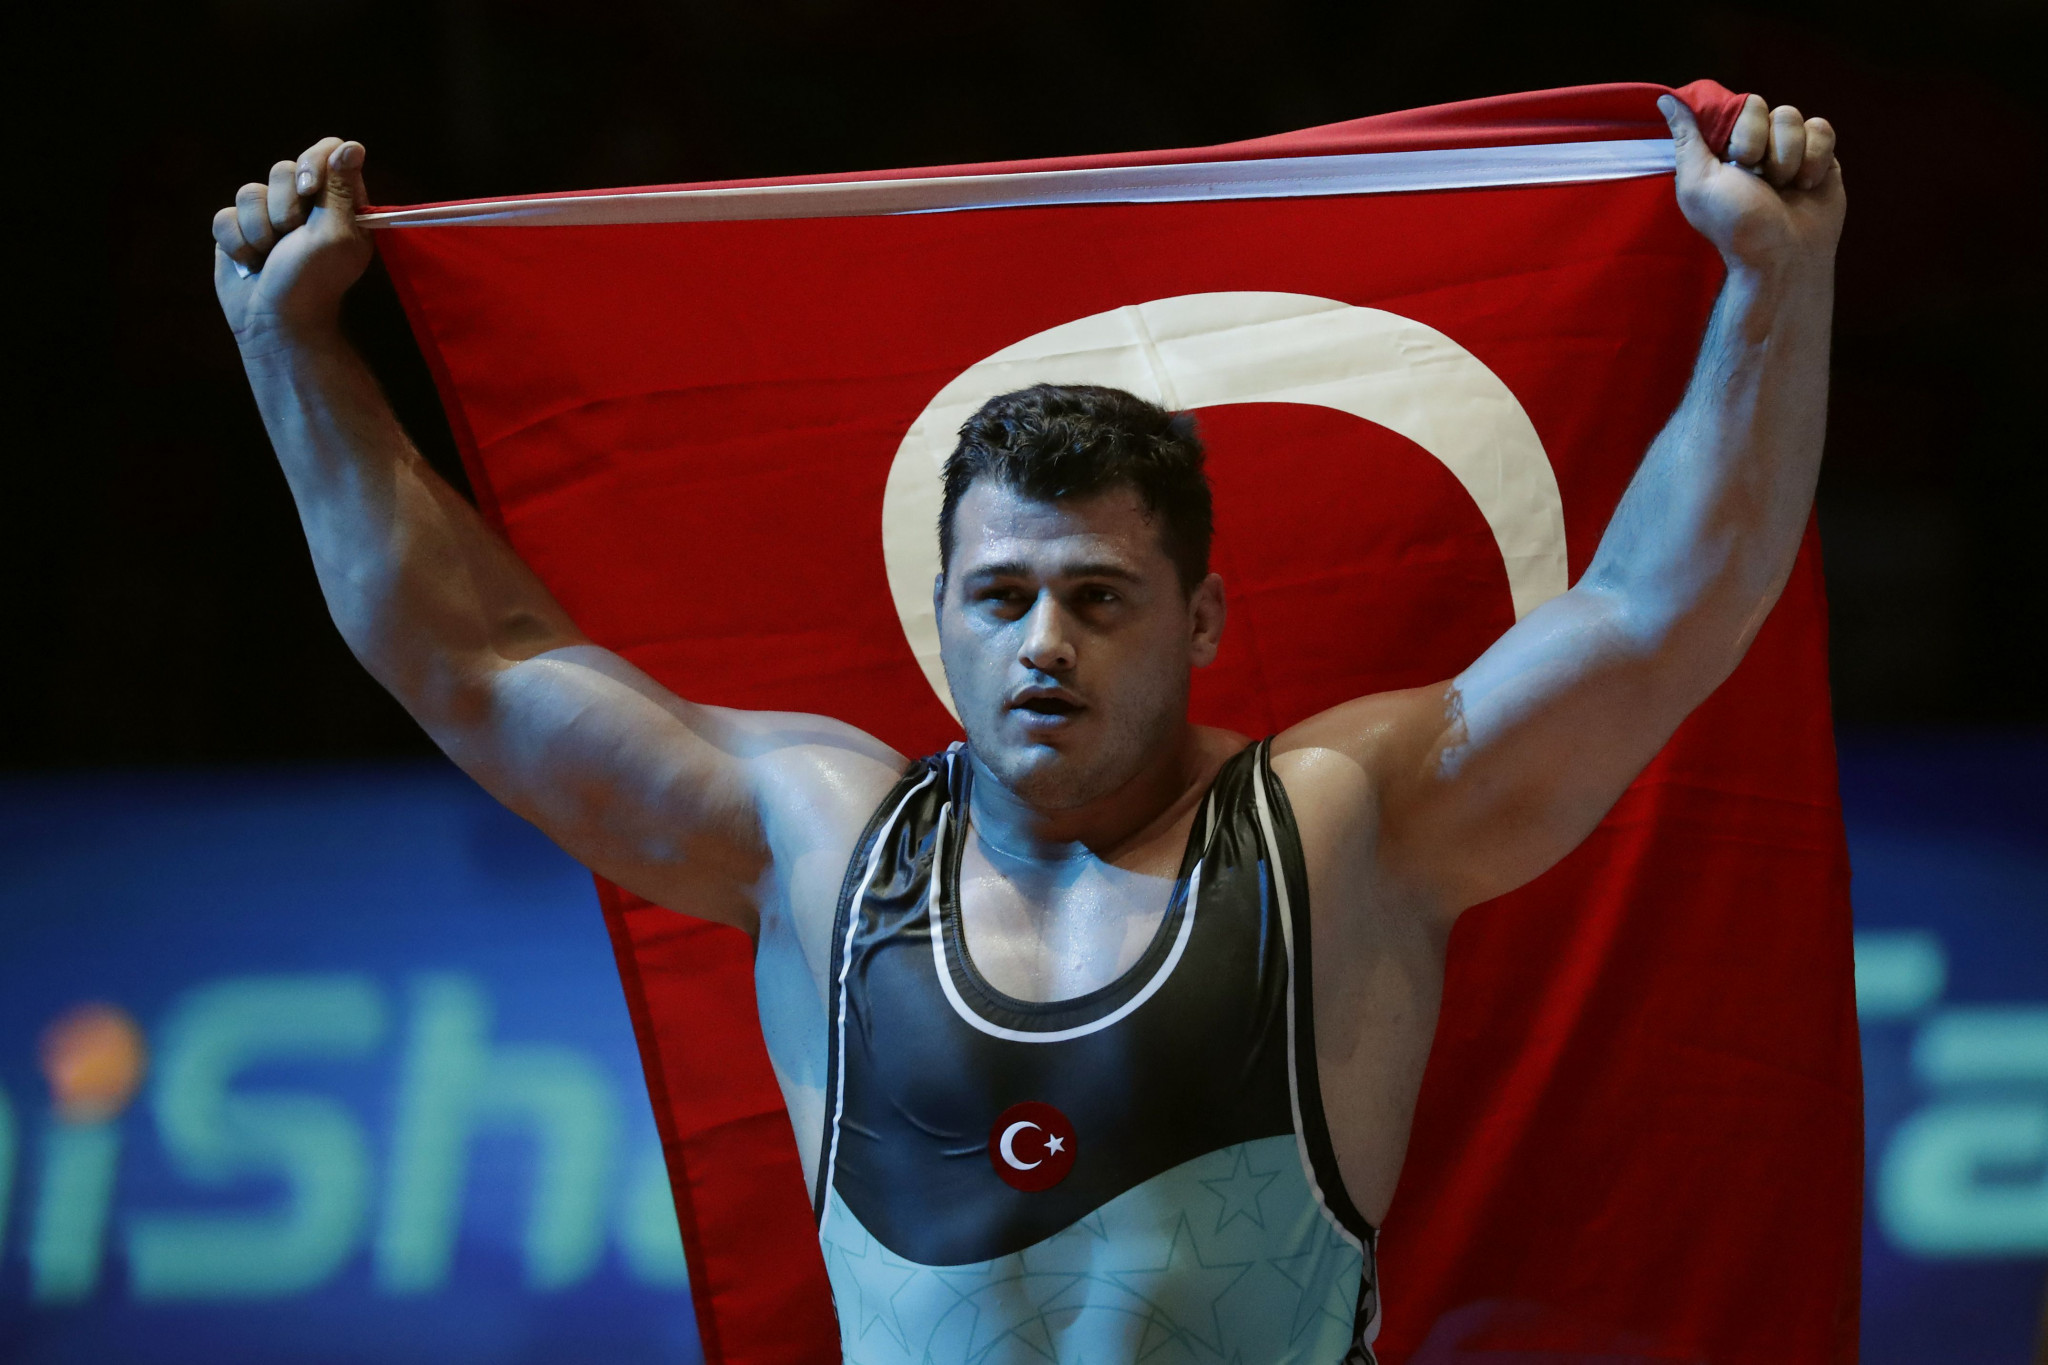 Turkey's triple world champion rises to number one spot as Greco-Roman rankings published